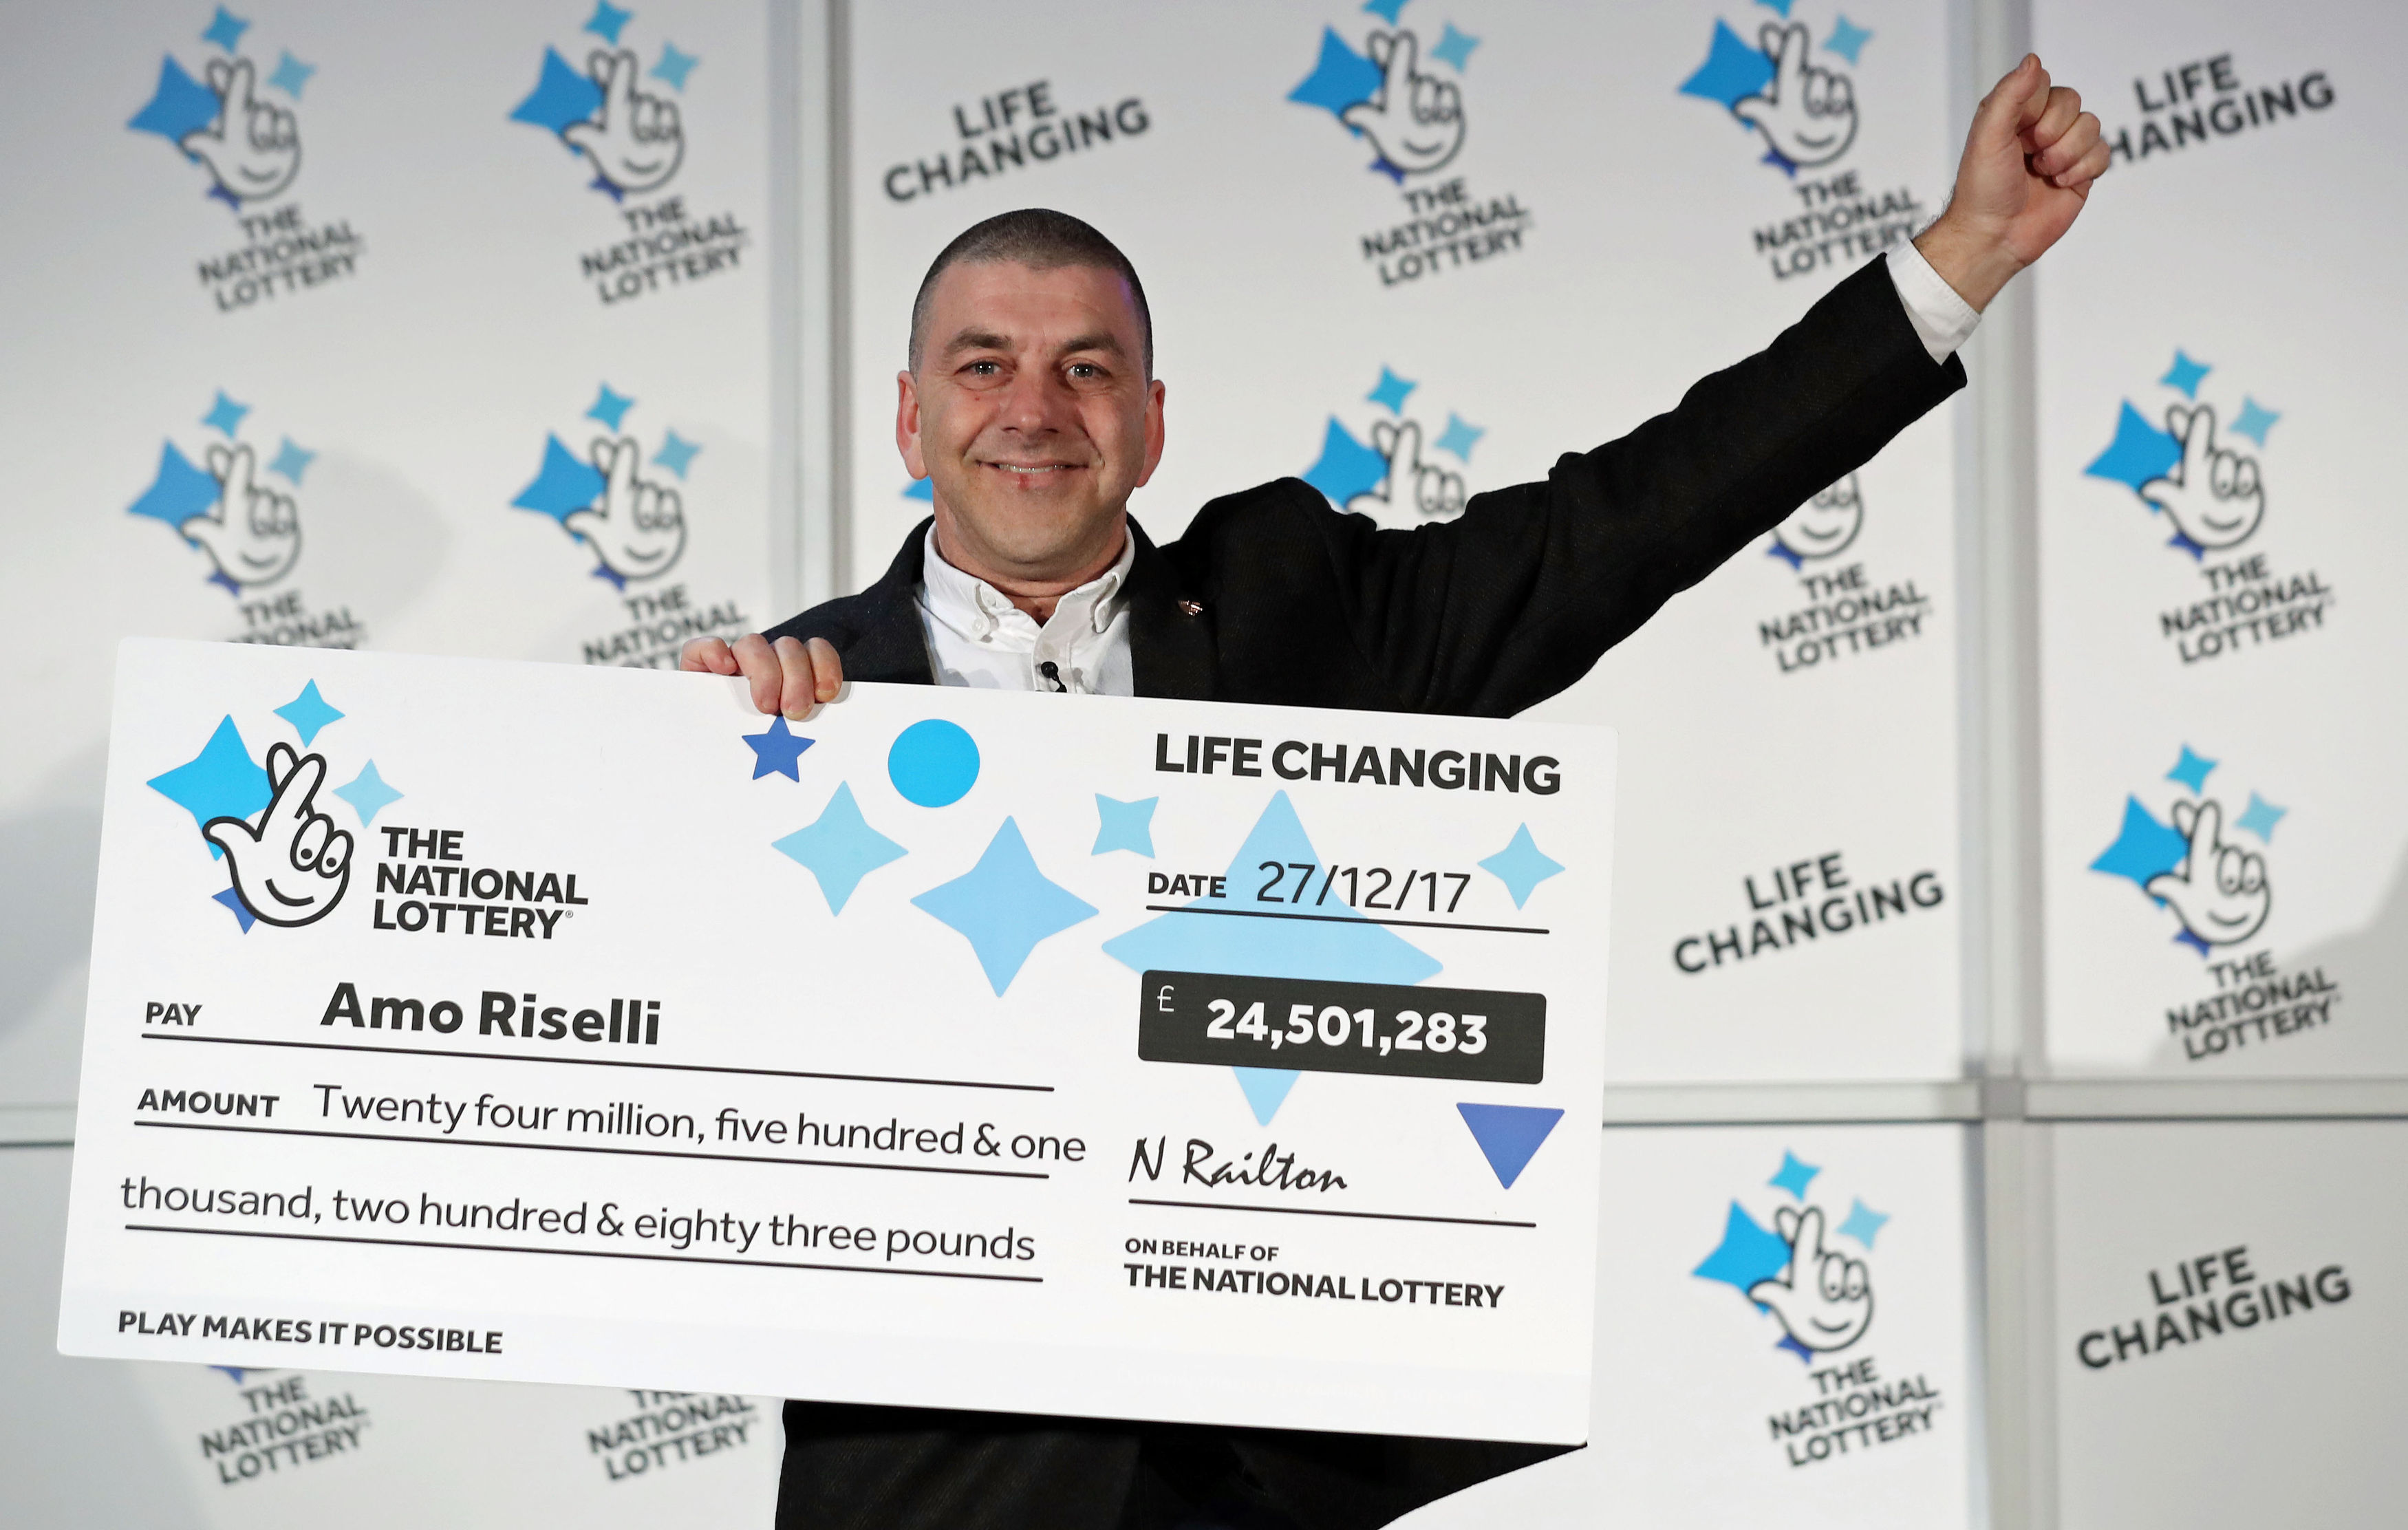 Cab Driver Who Won £25 Million On Lottery Reveals Identity PA 34311309